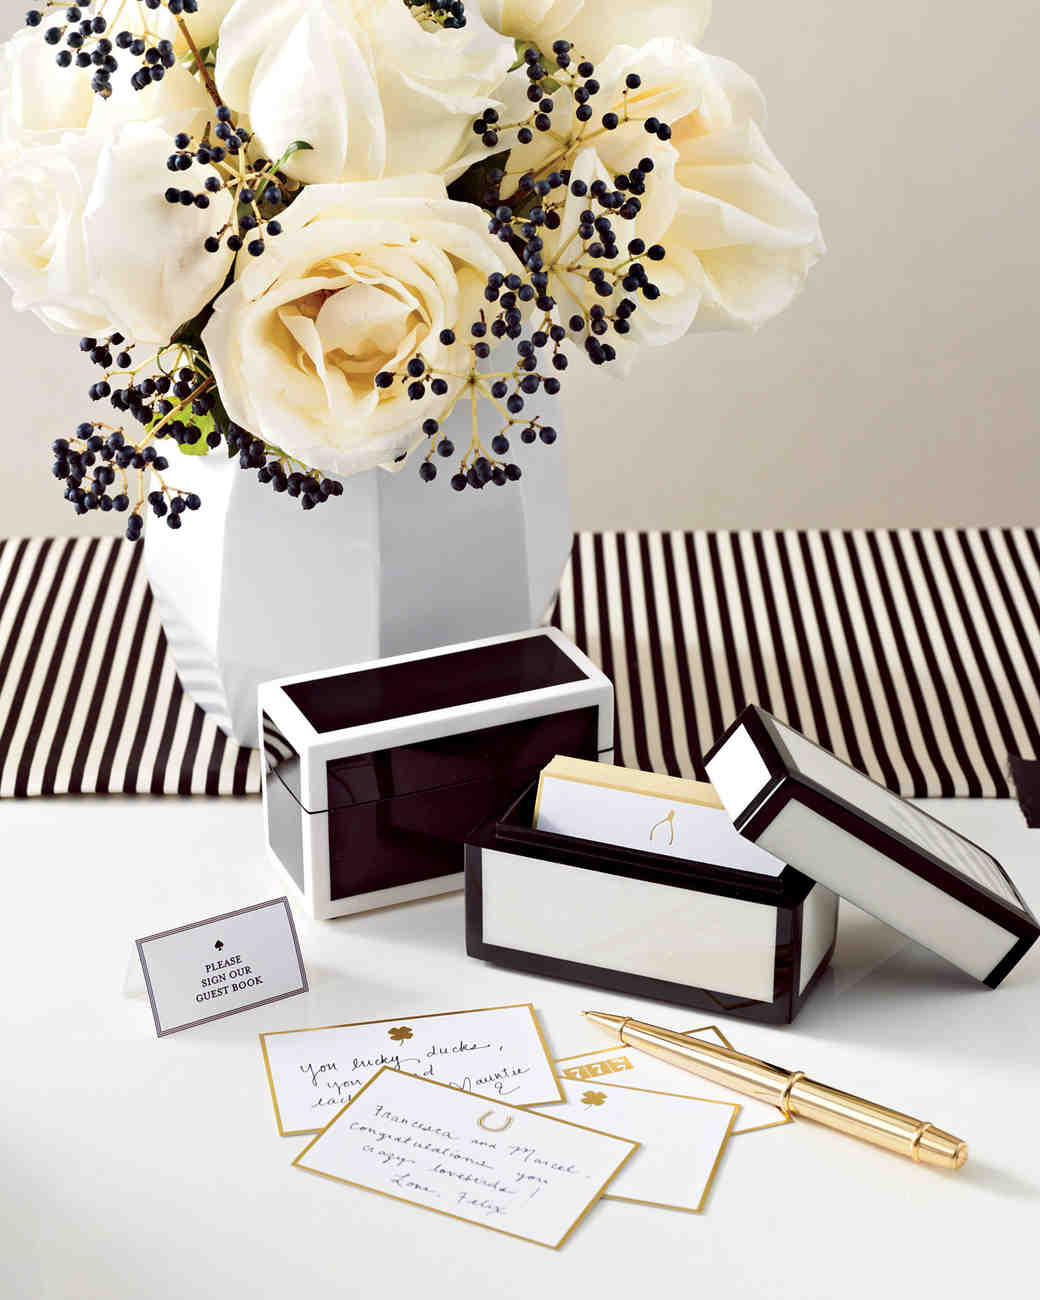 Wedding Colors Black White And Gold Martha Stewart Weddings